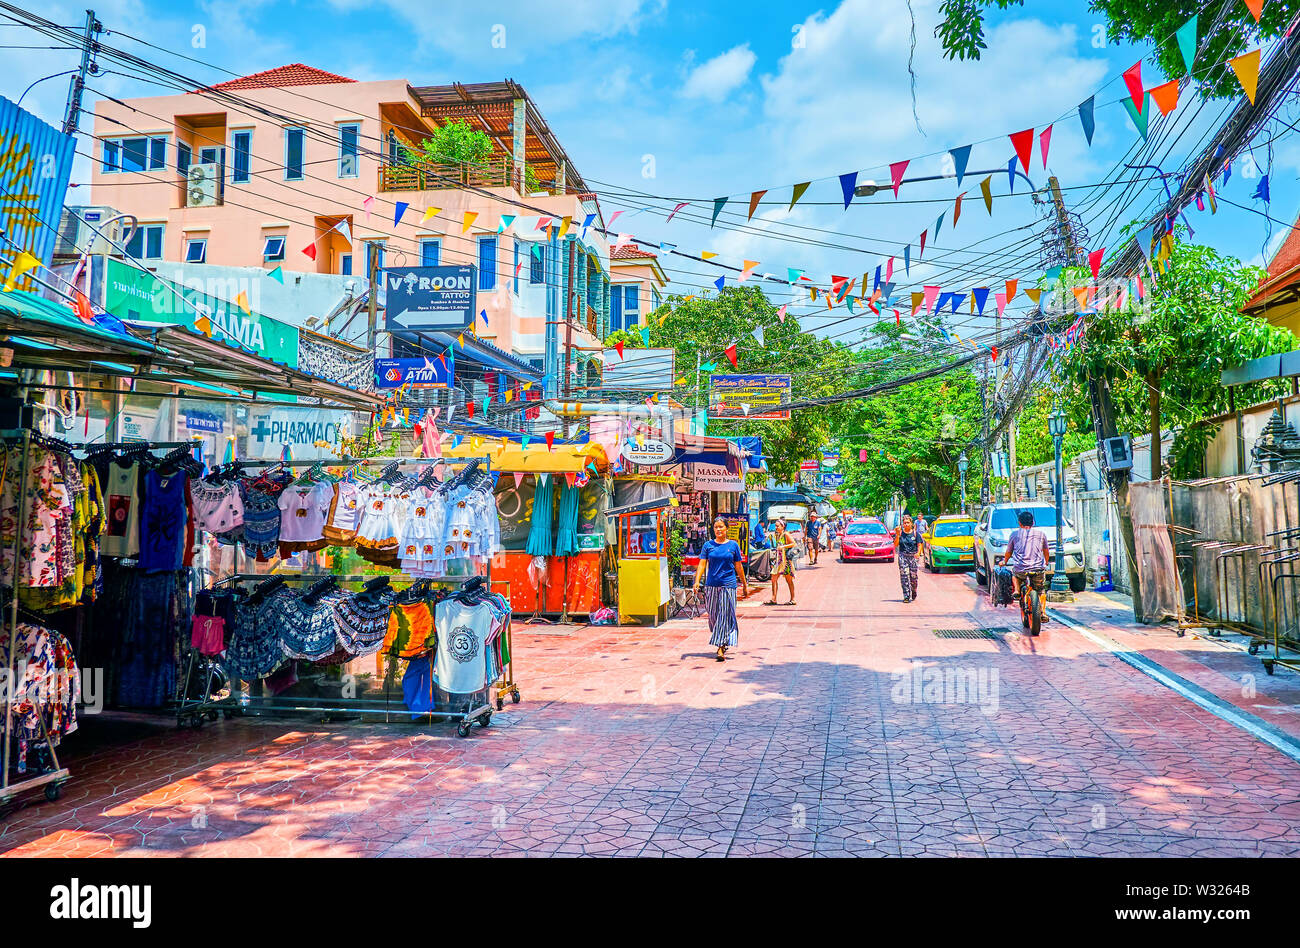 BANGKOK, THAILAND - APRIL 22, 2019: The popular Ram Buttri road with variey of tourist clothing shops and restaurants, on April 22 in Bangkok - Stock Image